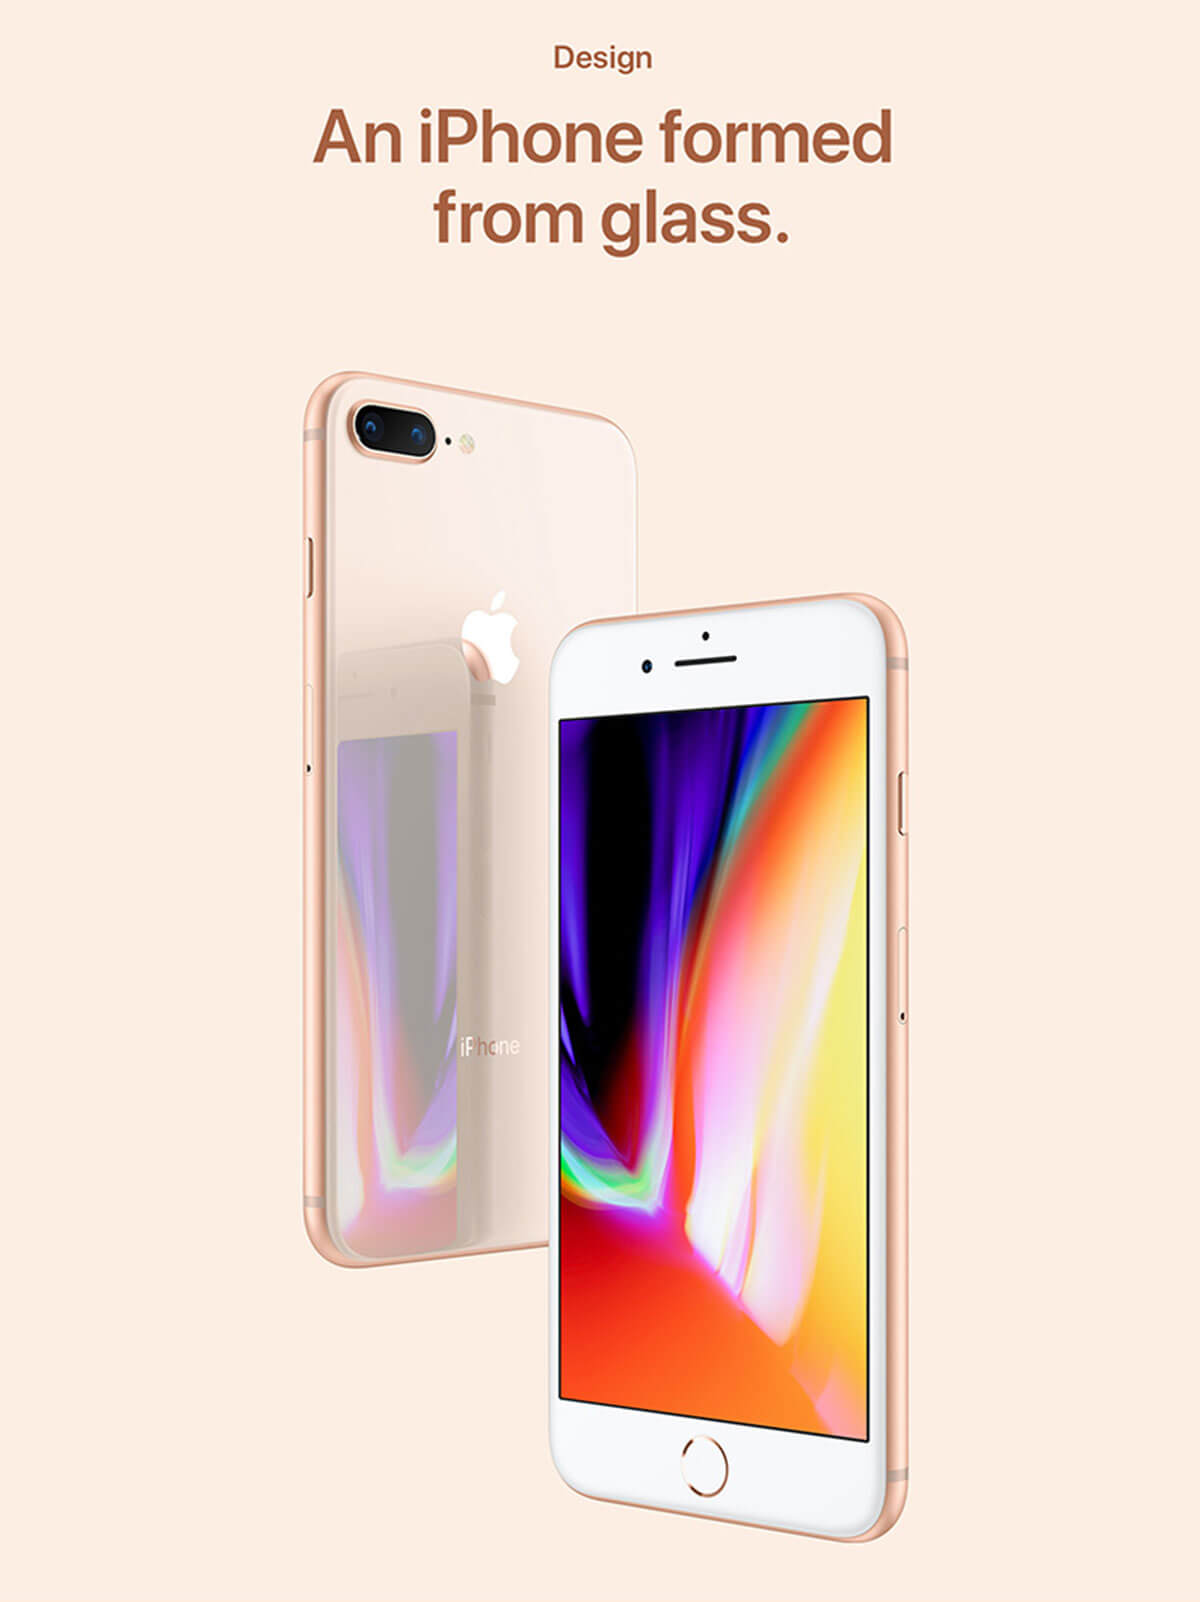 iPhone 8 formed from glass